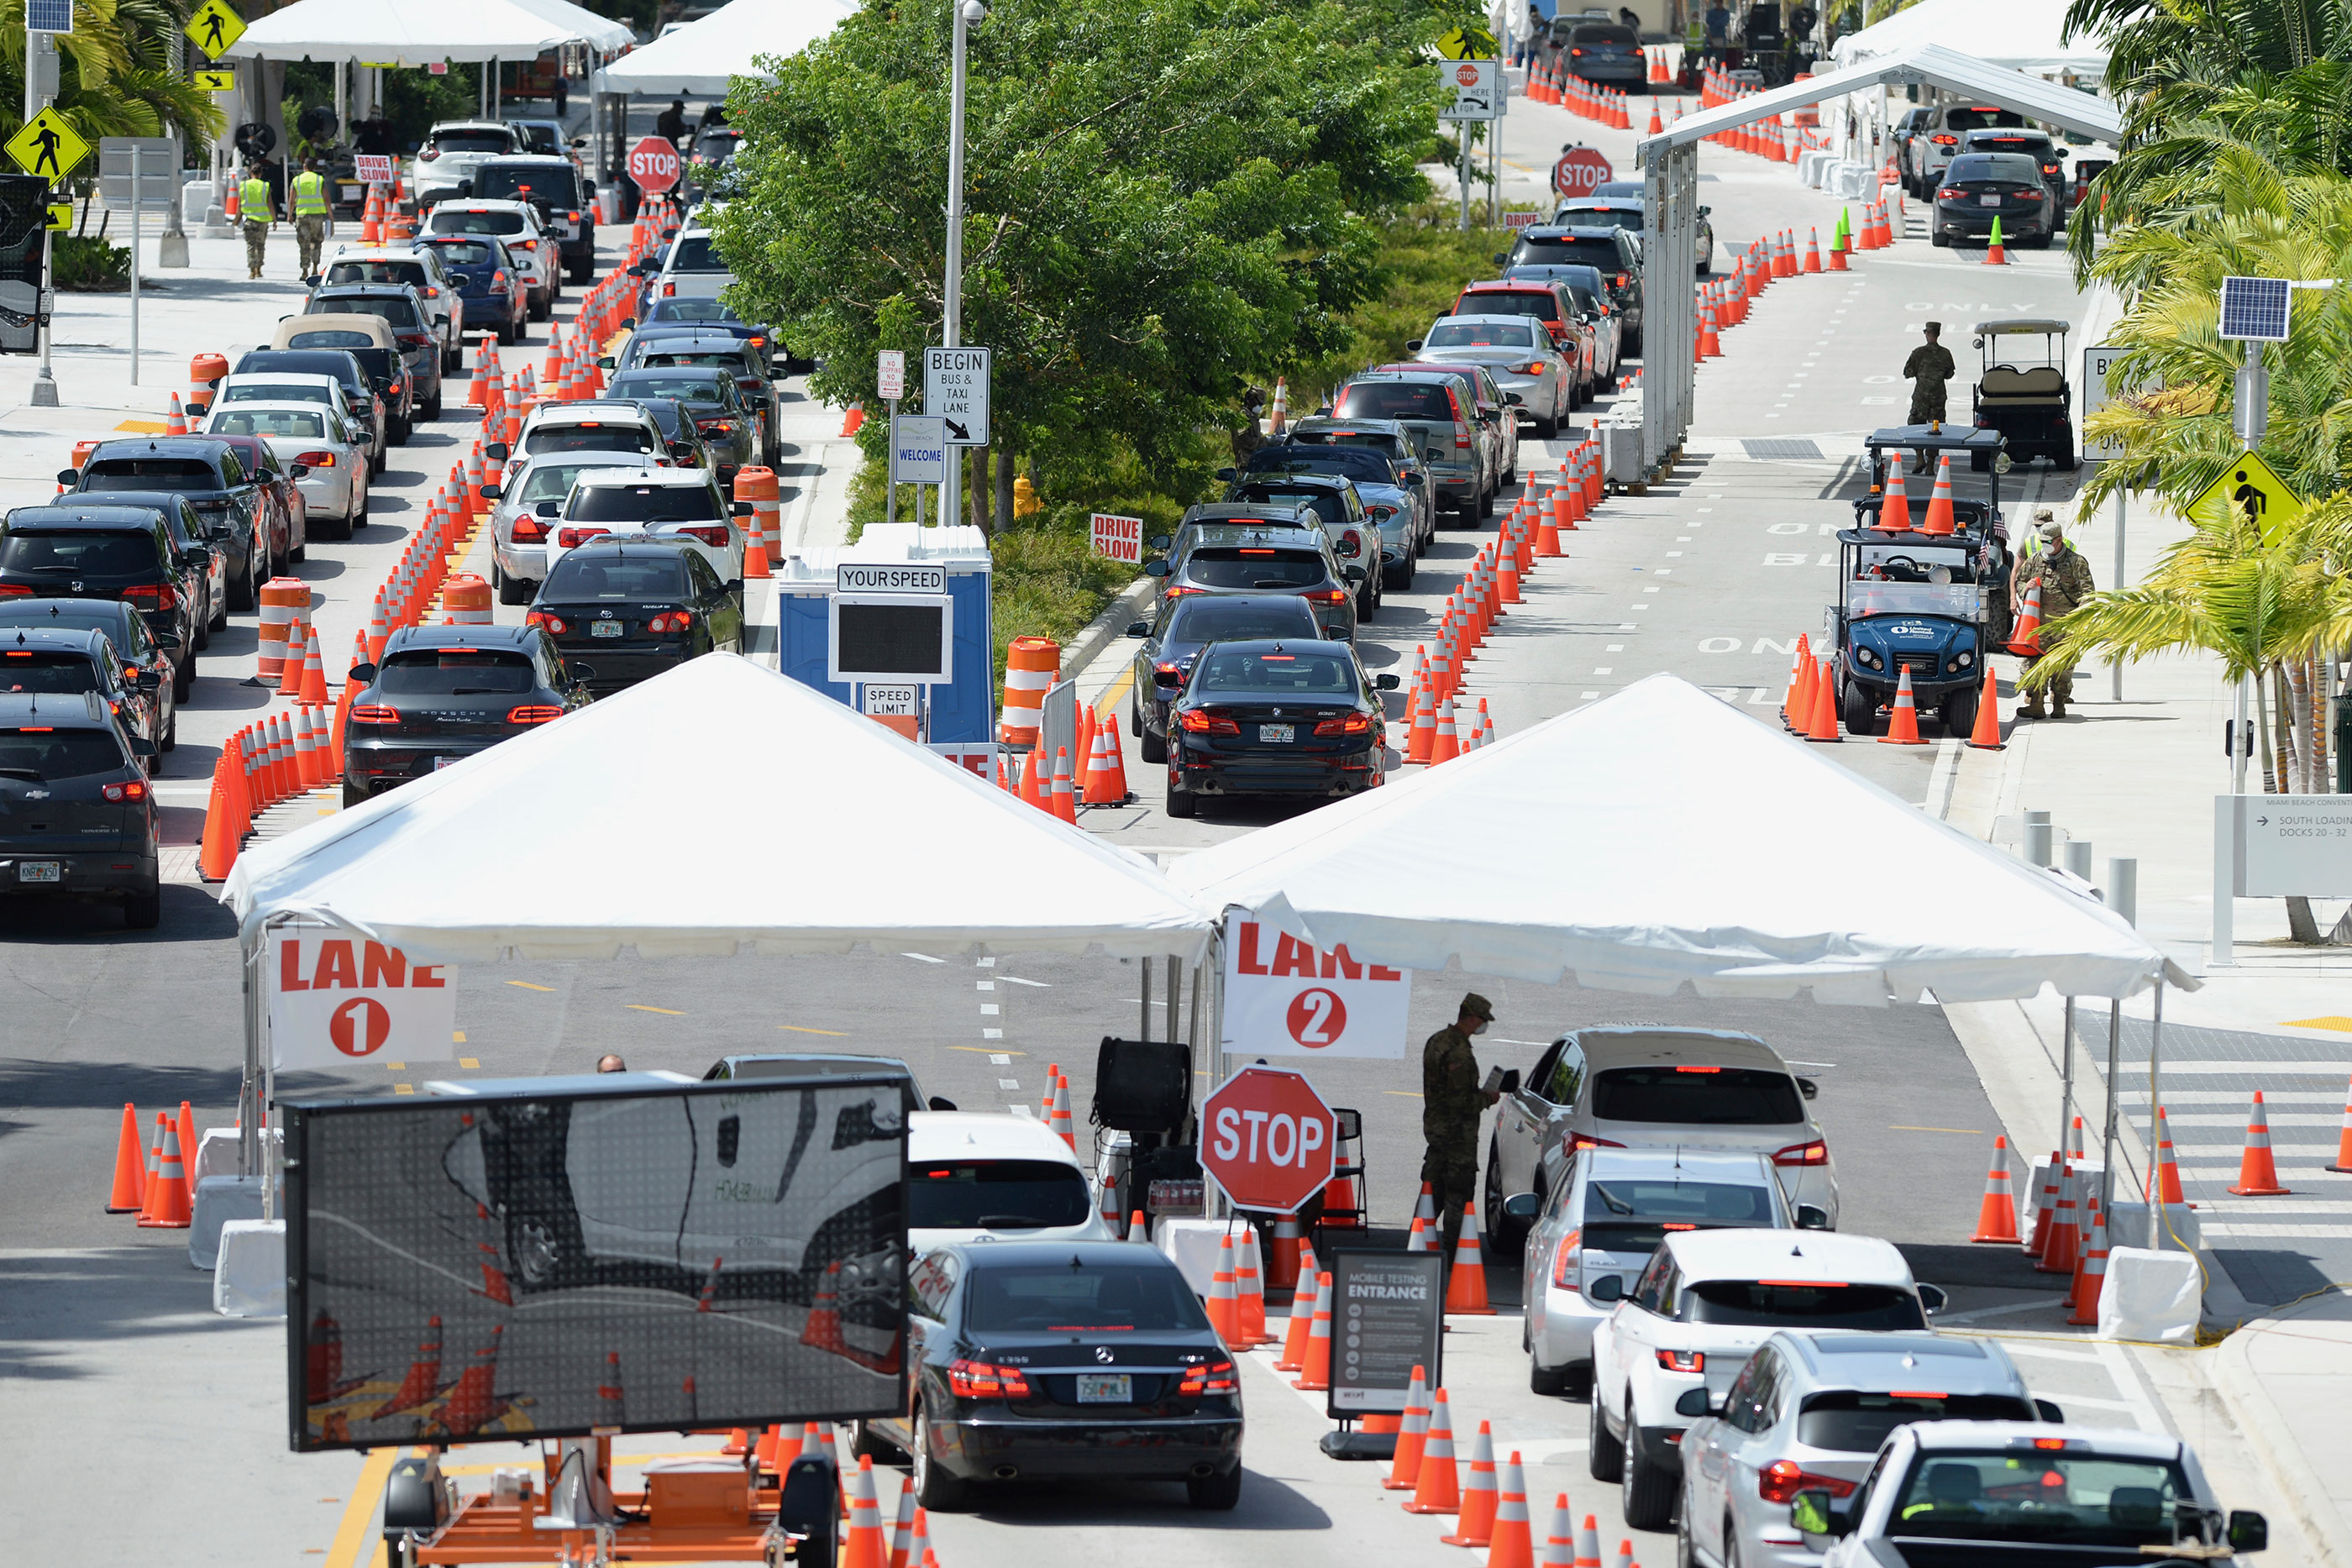 Cars wait in line at a drive-thru coronavirus testing site on July 2 in Miami Beach, Florida.